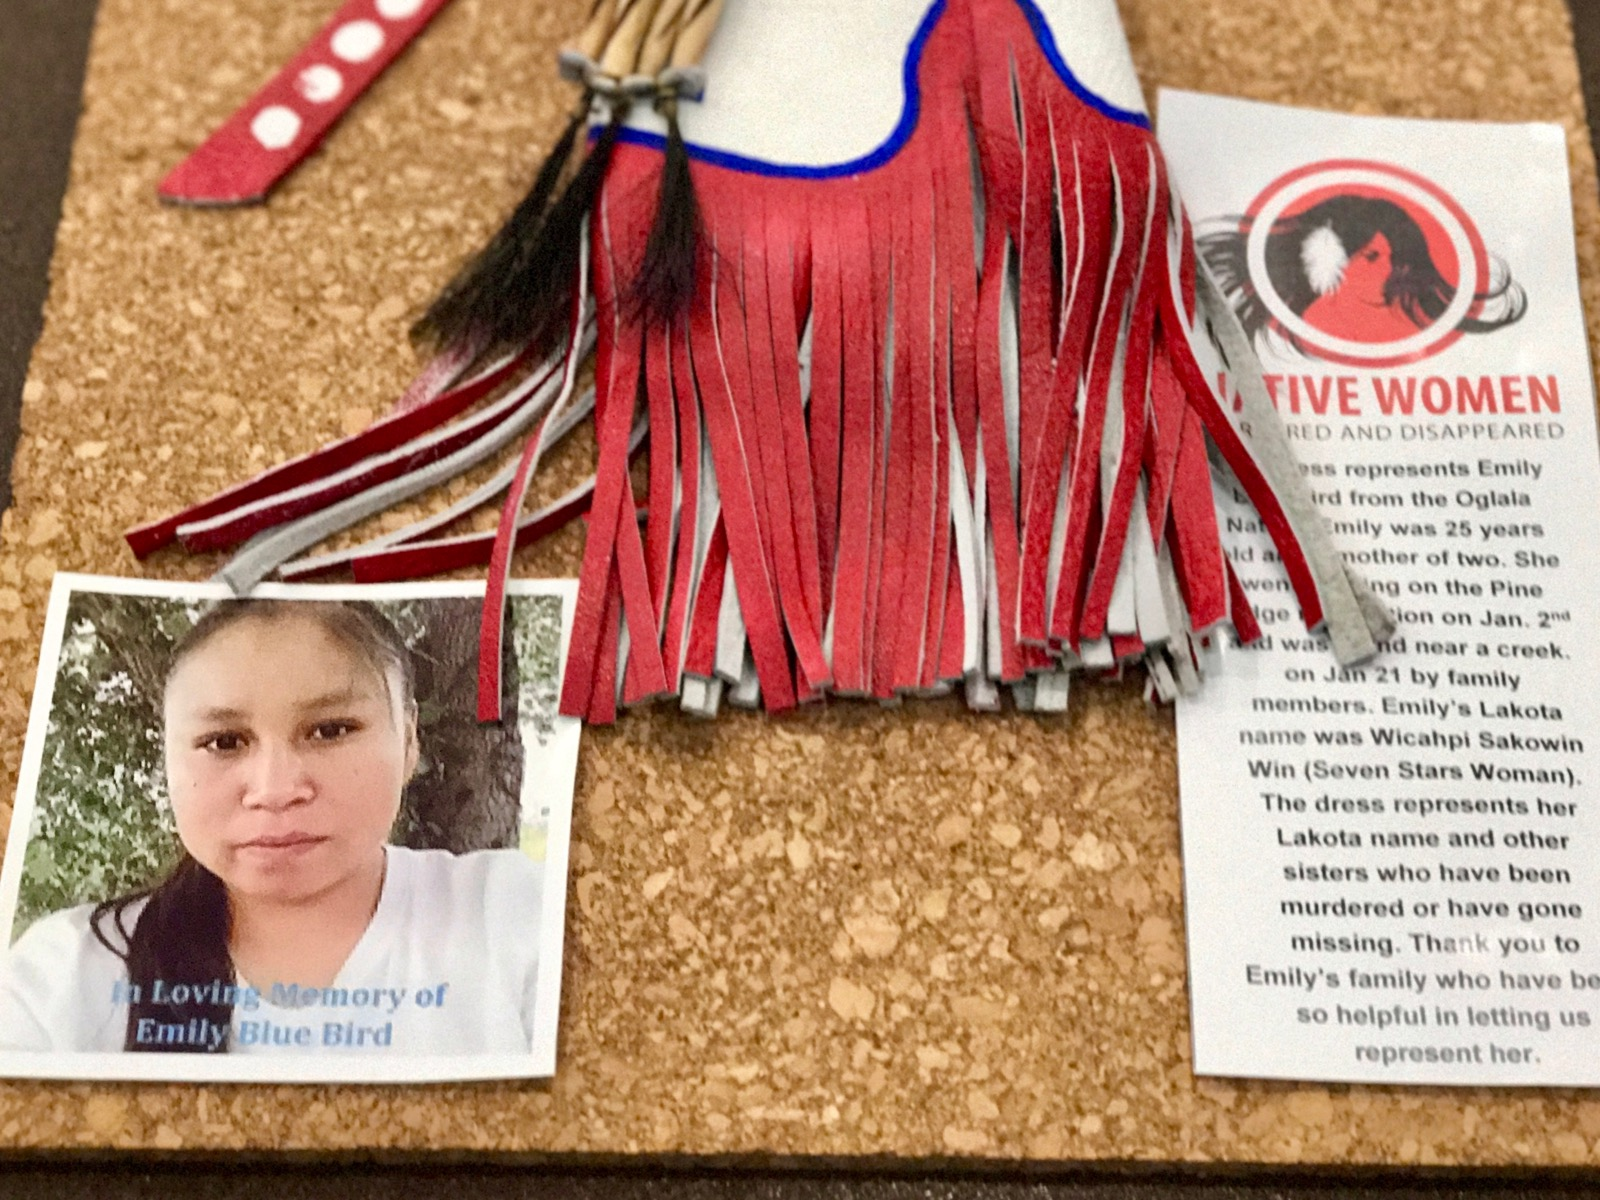 Mary Annette Pember: Little data on missing and murdered Native women and girls